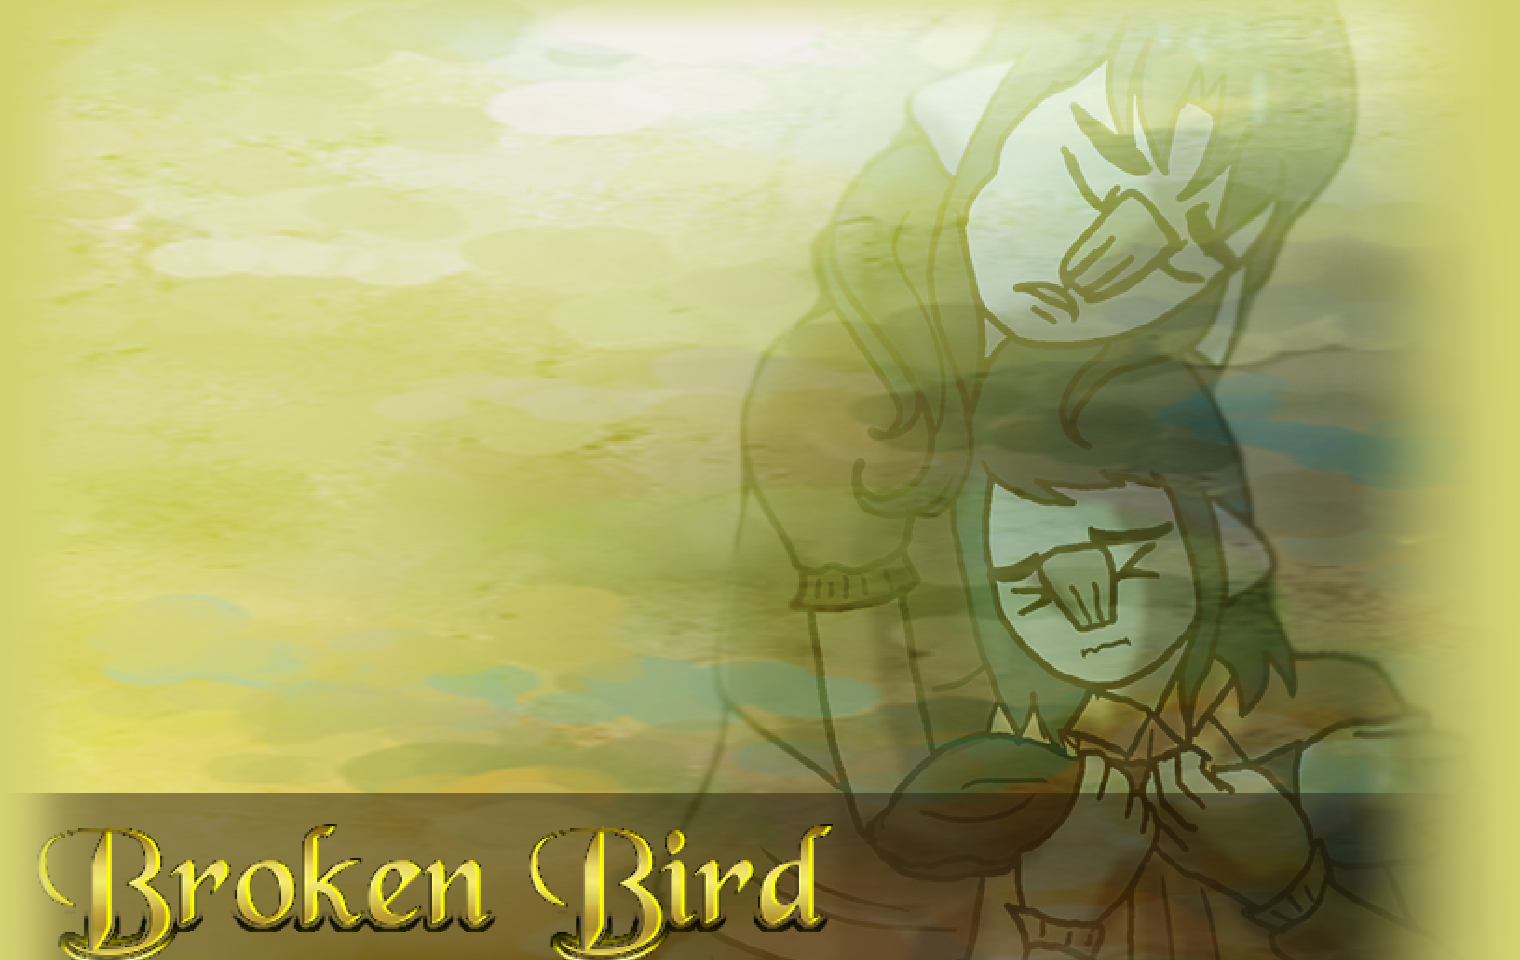 PIPER: Broken Bird